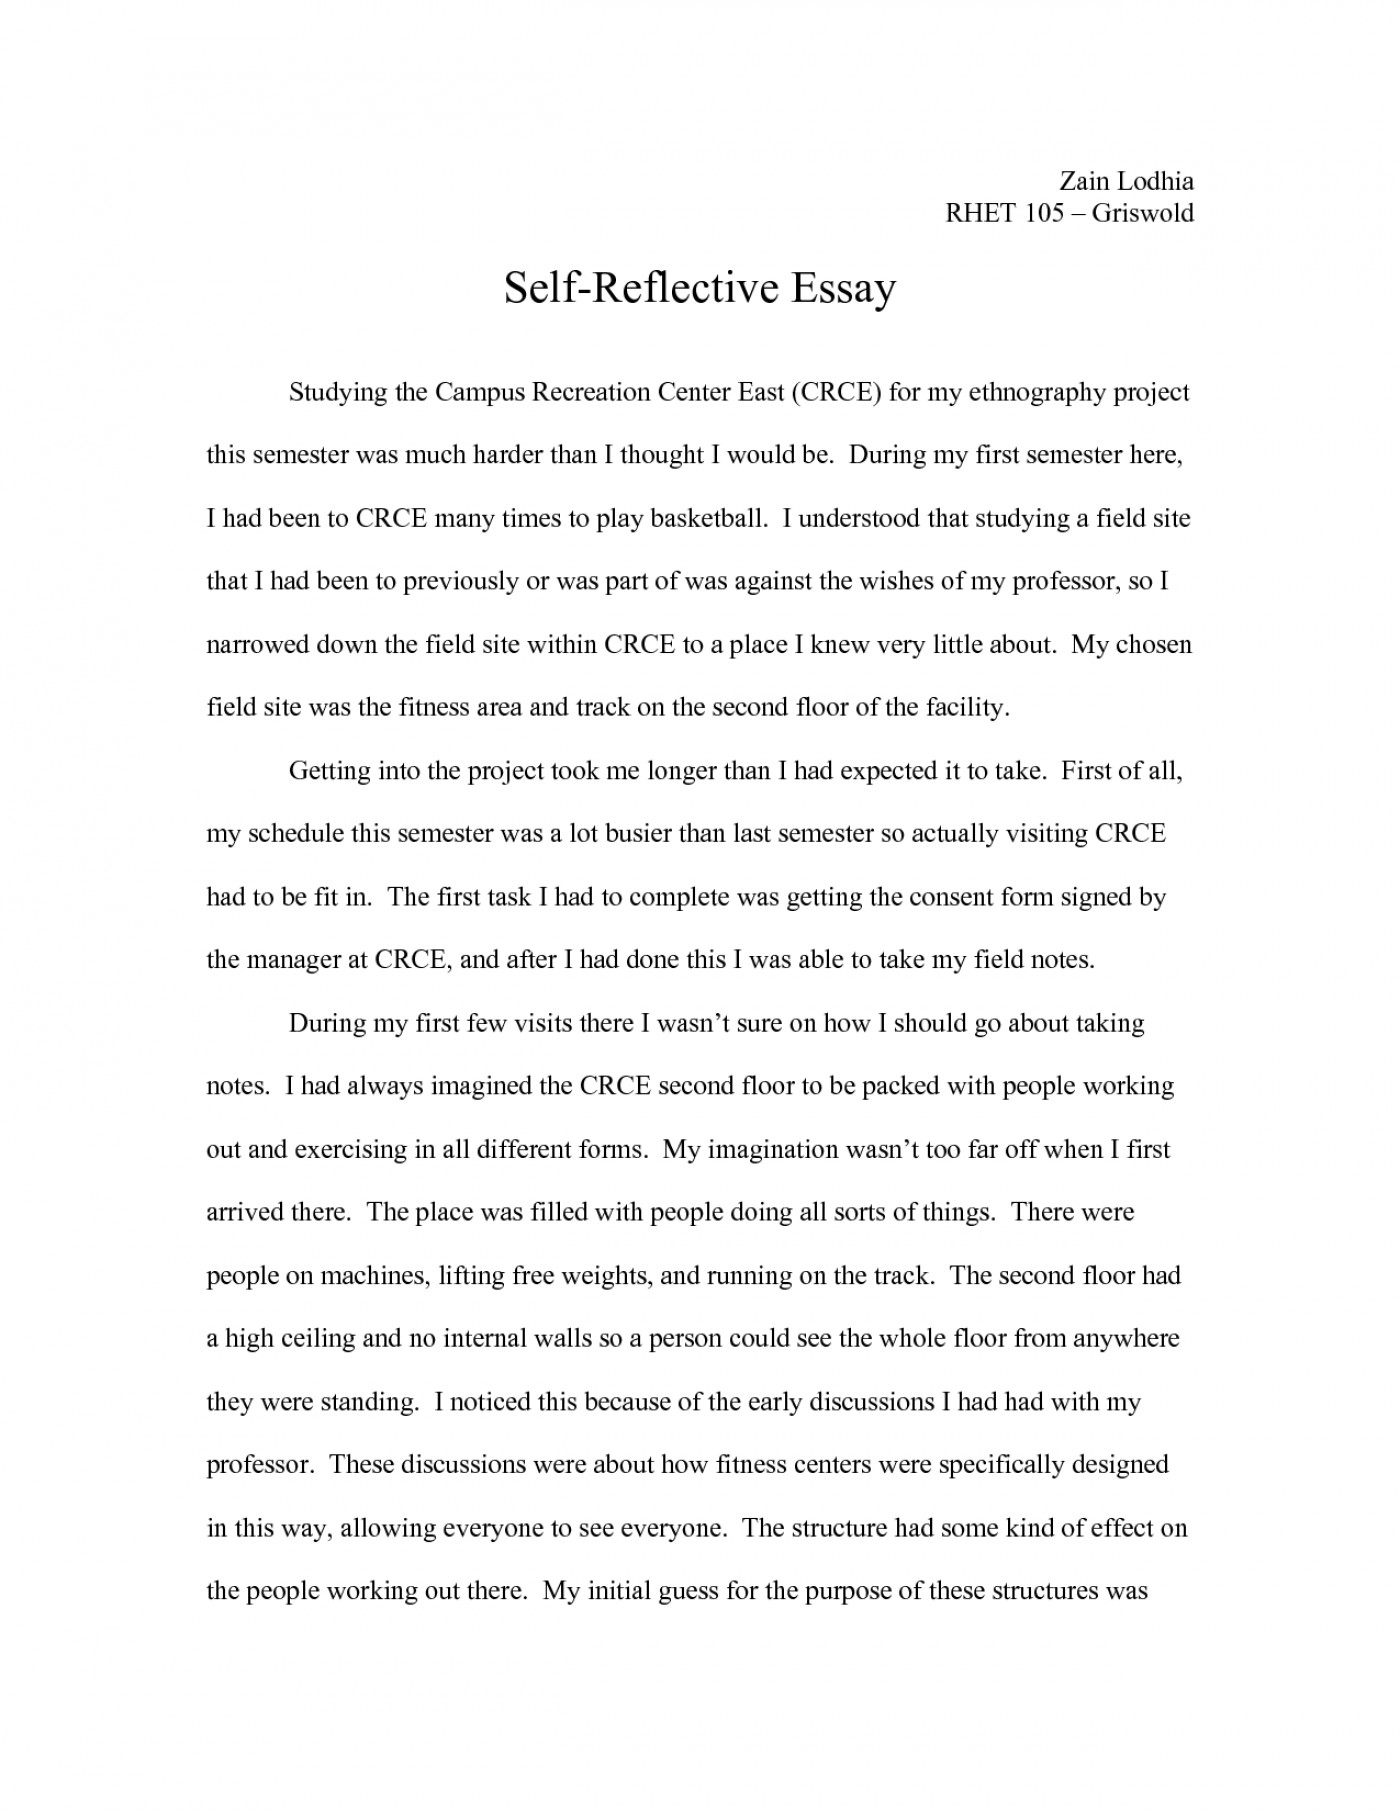 003 Qal0pwnf46 Reflective Essays Beautiful Essay Examples Sample Pdf About Writing English 101 1400